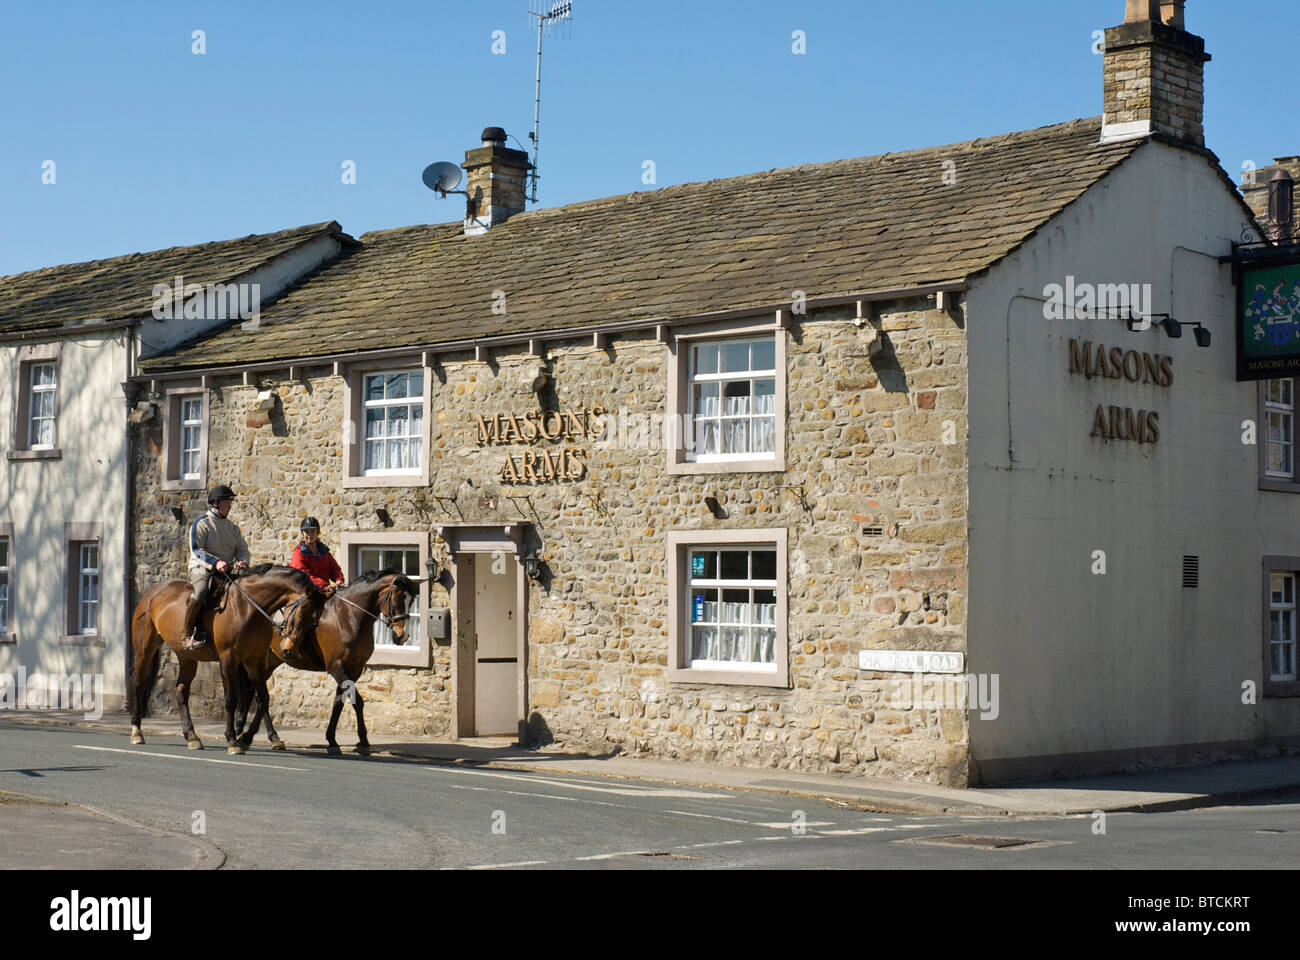 Two horse riders passing the Masons Arms pub in the village of Gargrave, North Yorkshire, England UK - Stock Image